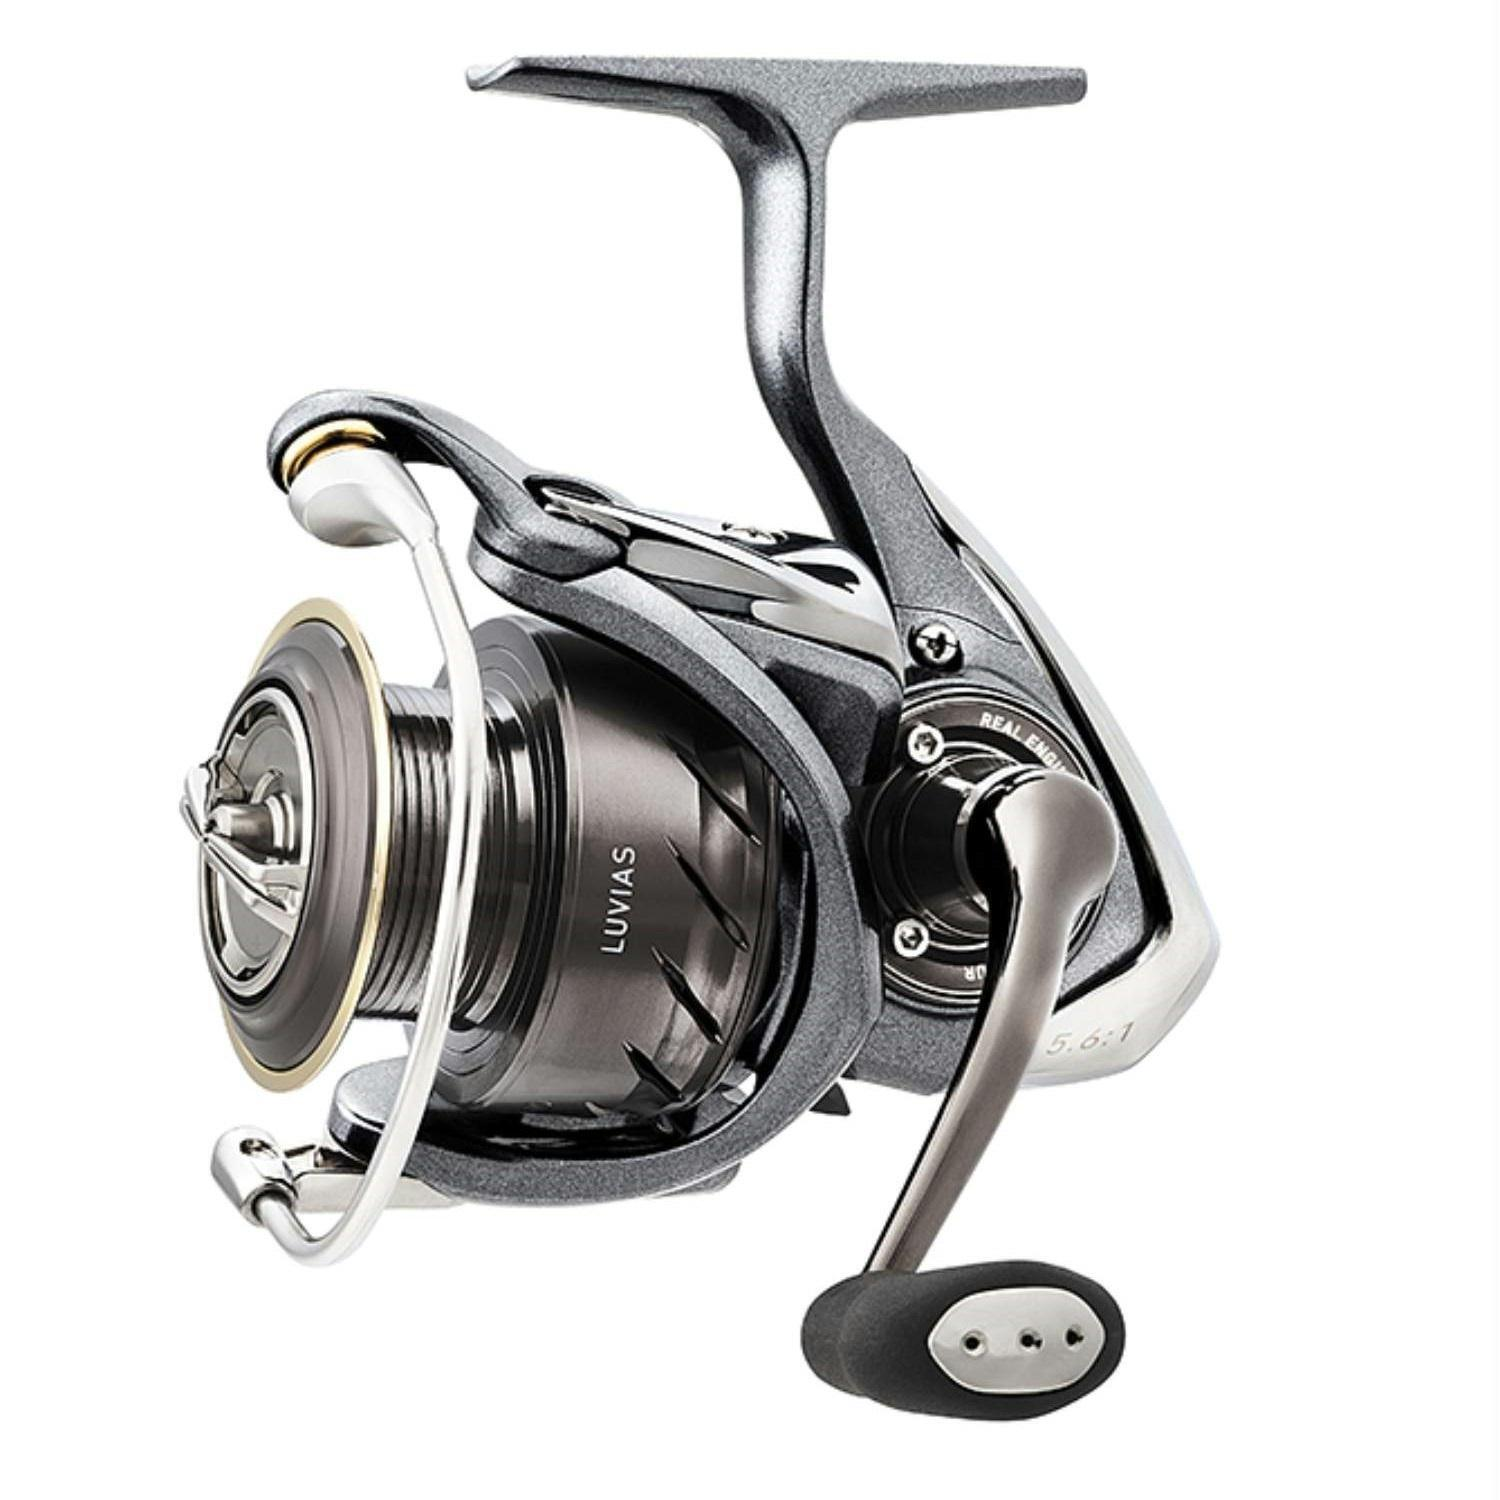 Brand NEW Daiwa LUVIAS2510PE-H Luvias Zaion Body 5.7:1 Spinning Fishing Reel